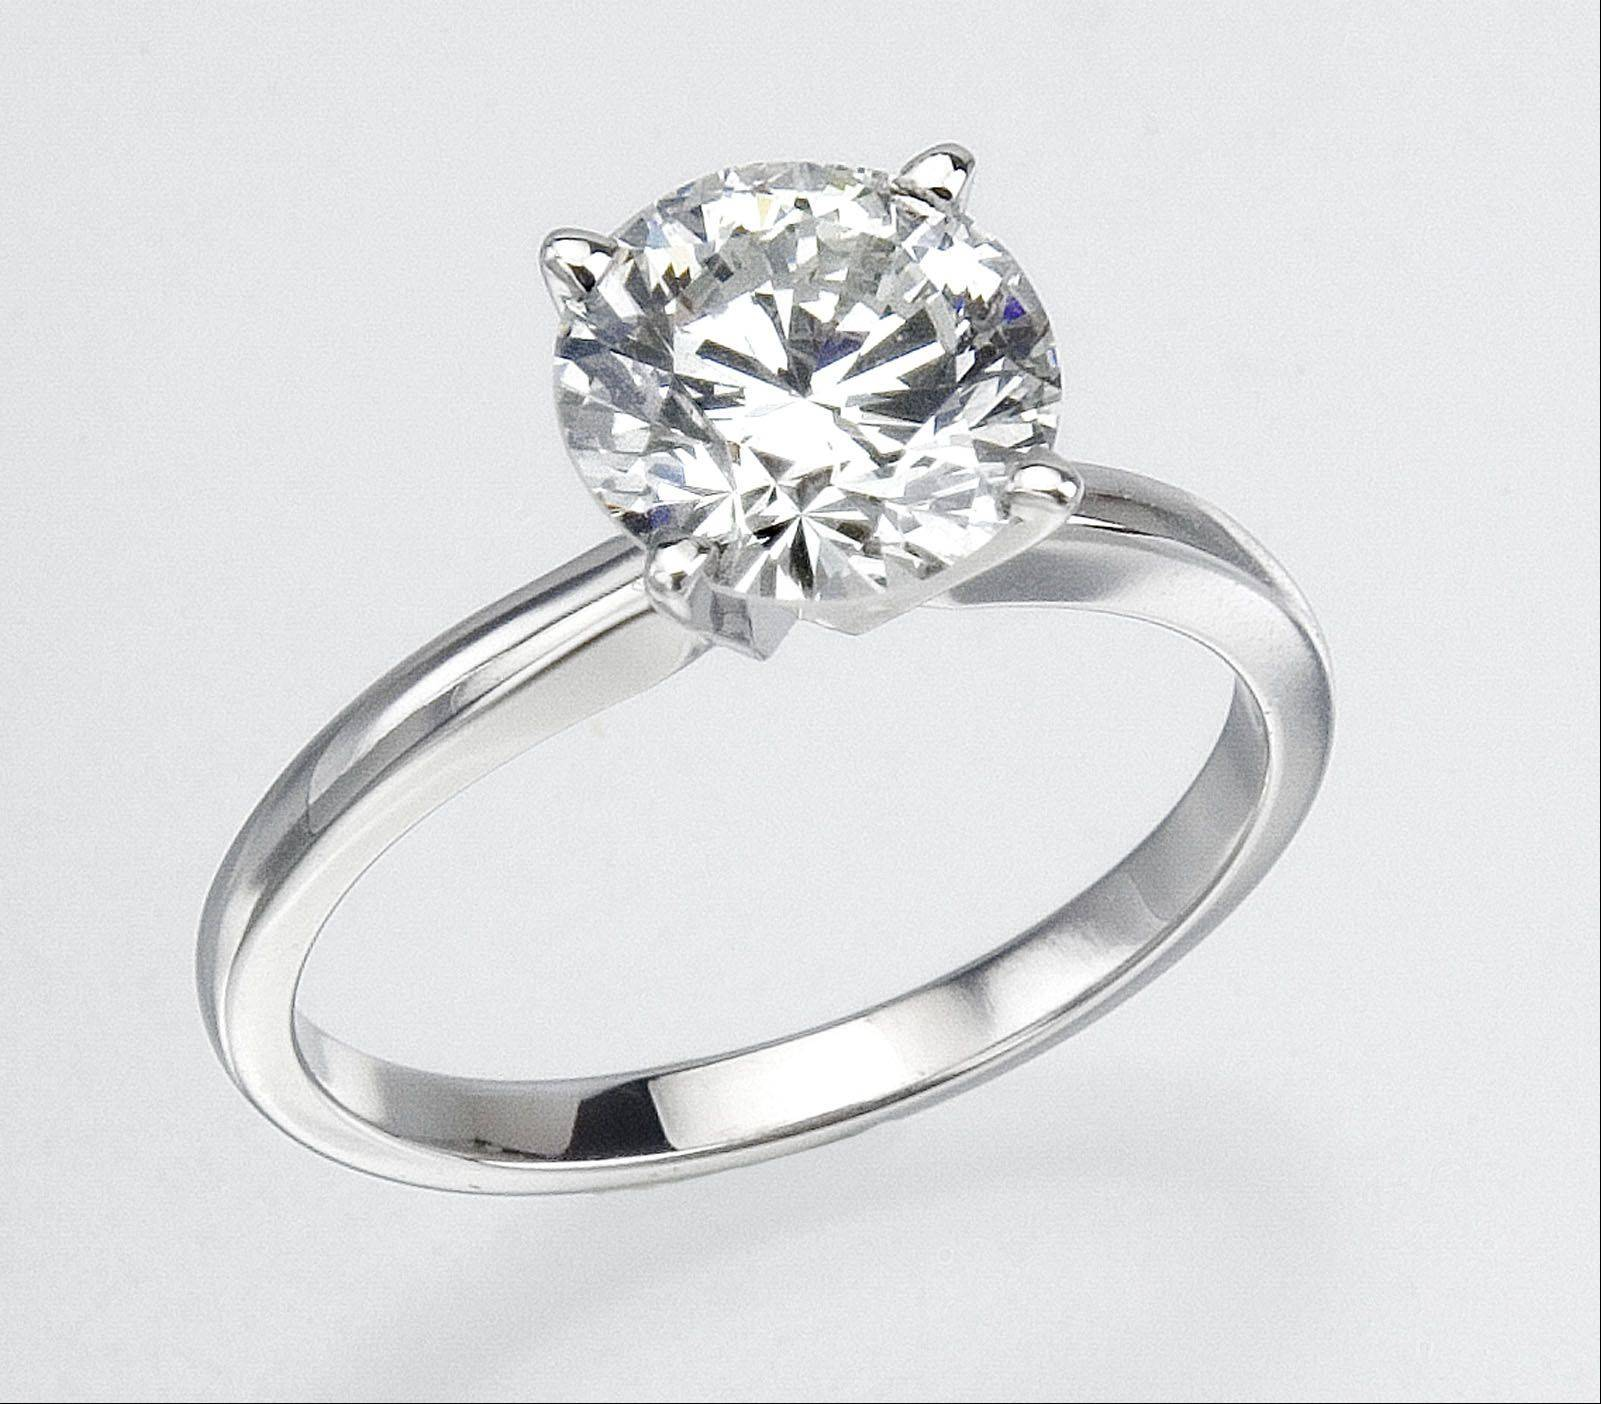 Engagement Rings And Wedding Bands From Online Jewelers Can Cost More Than  20 Percent Less,